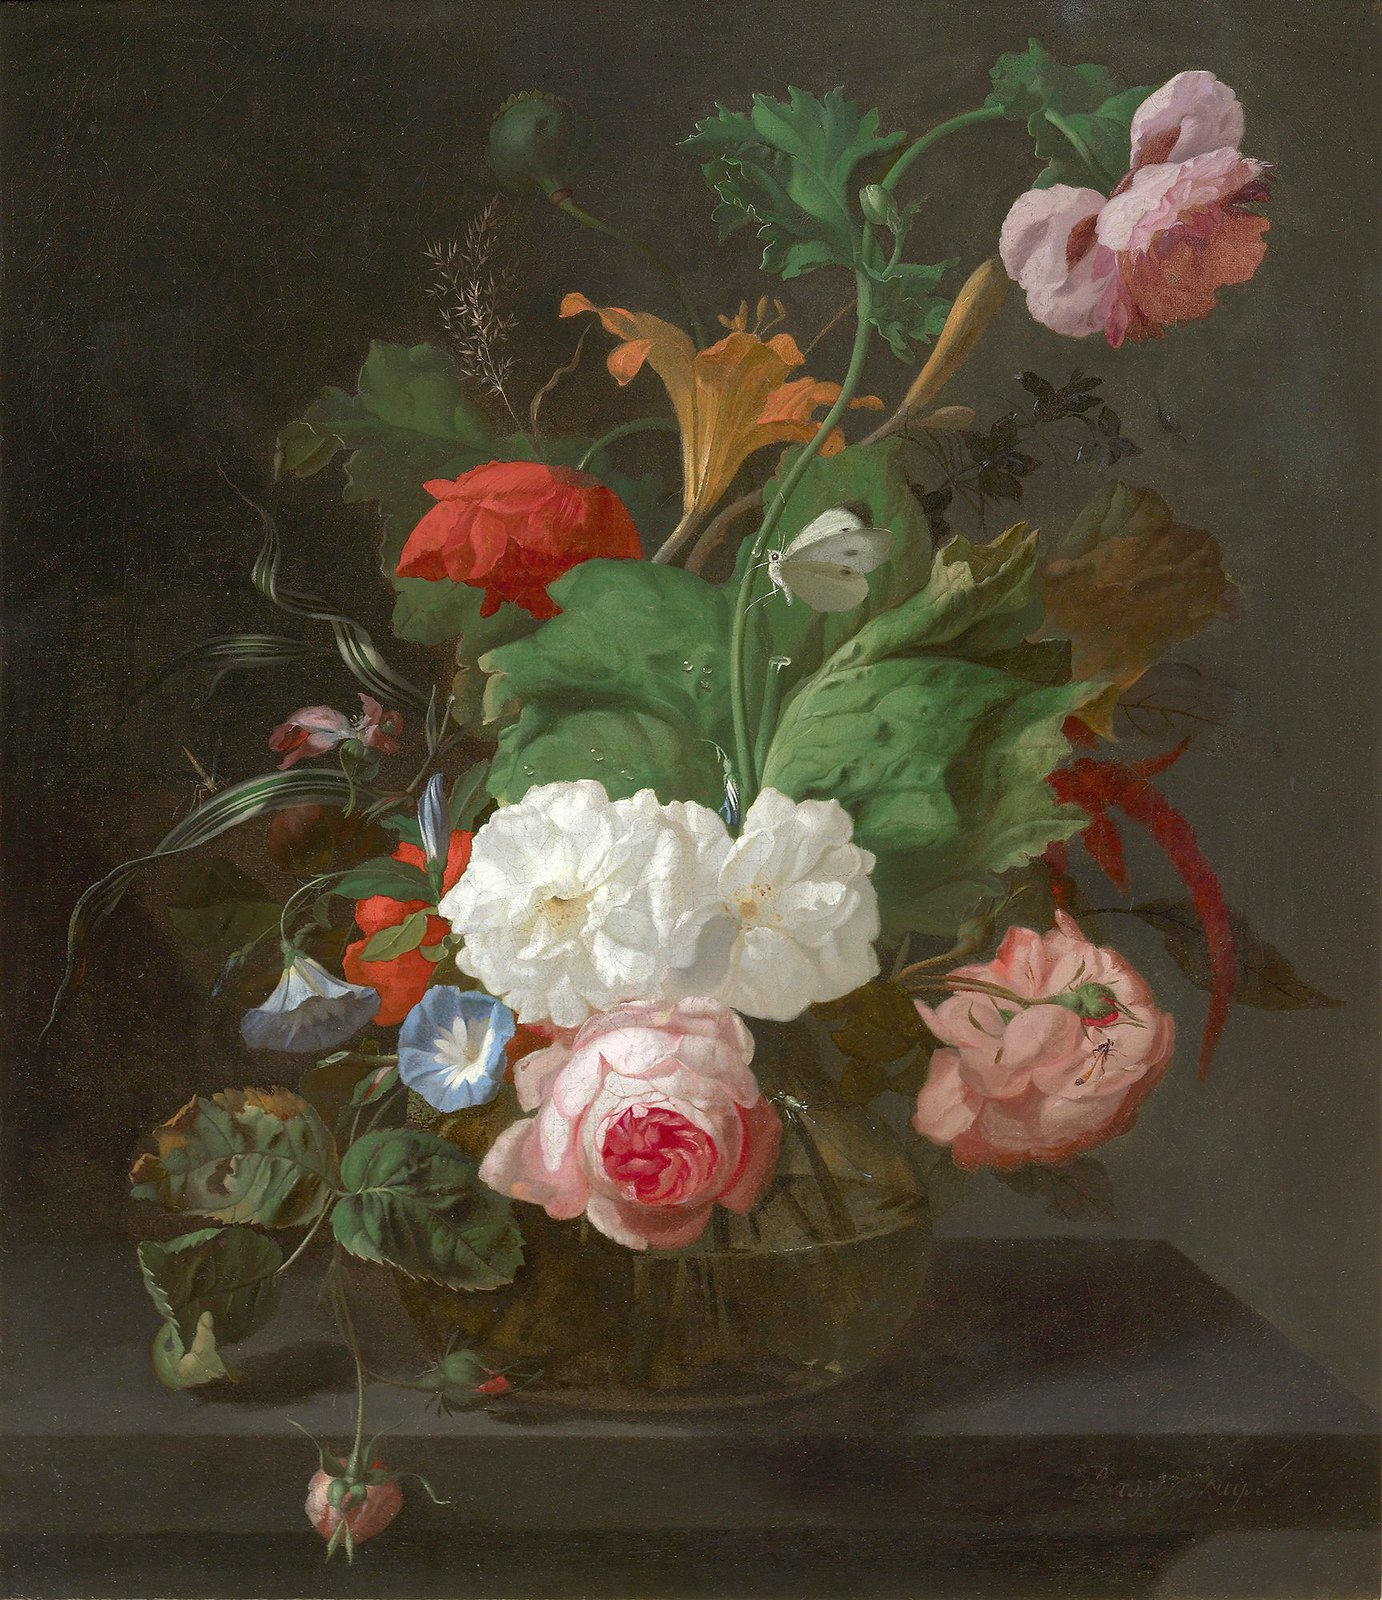 Summer Flowers in a Vase by Rachel Ruysch, 17th Century